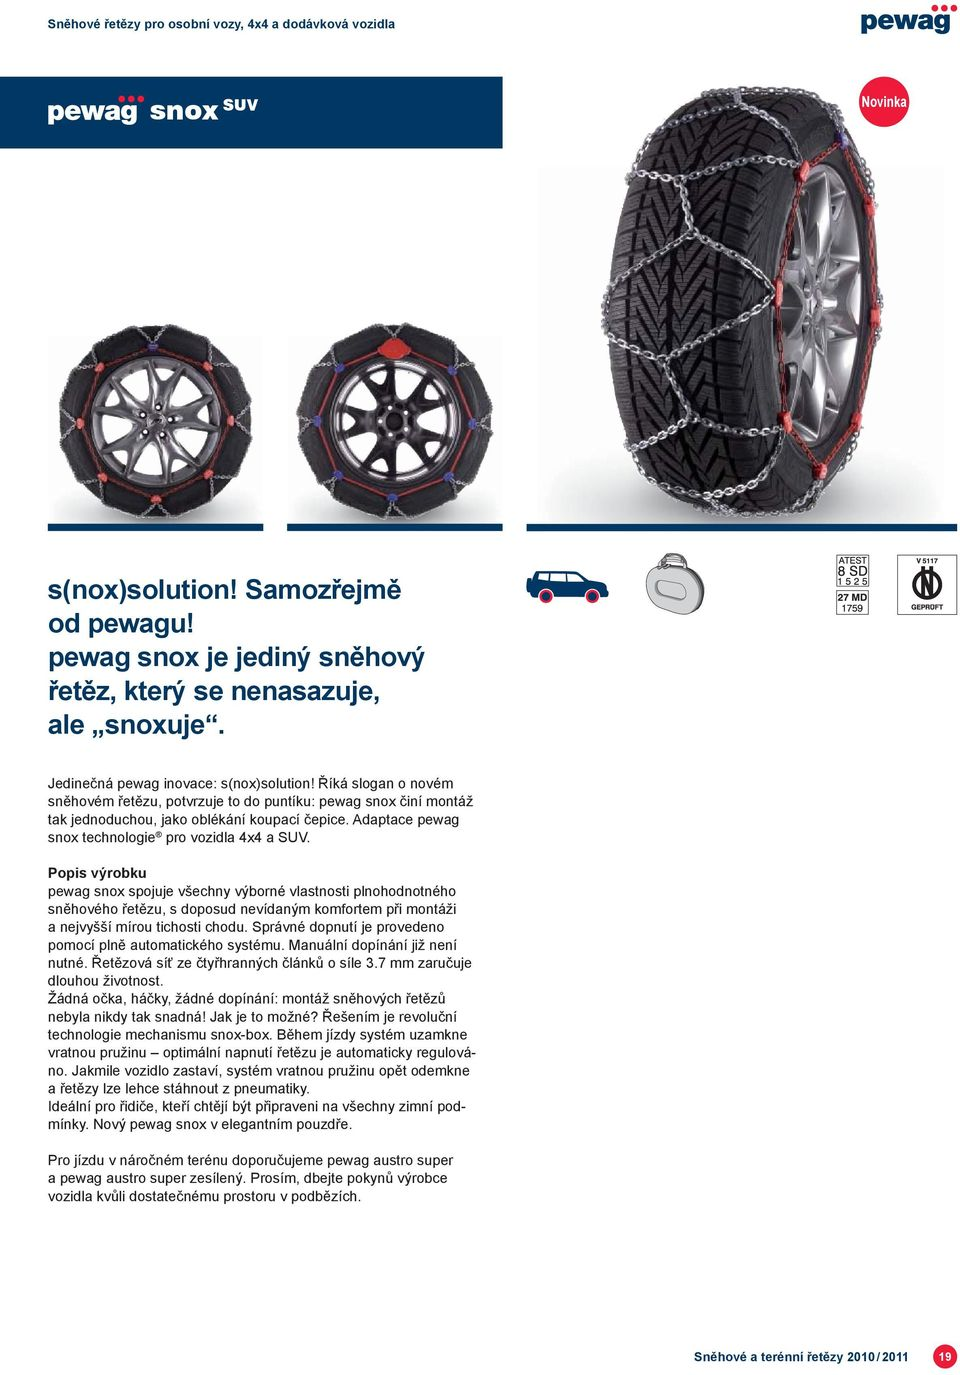 Adaptace pewag snox technologie pro vozidla 4x4 a SUV.